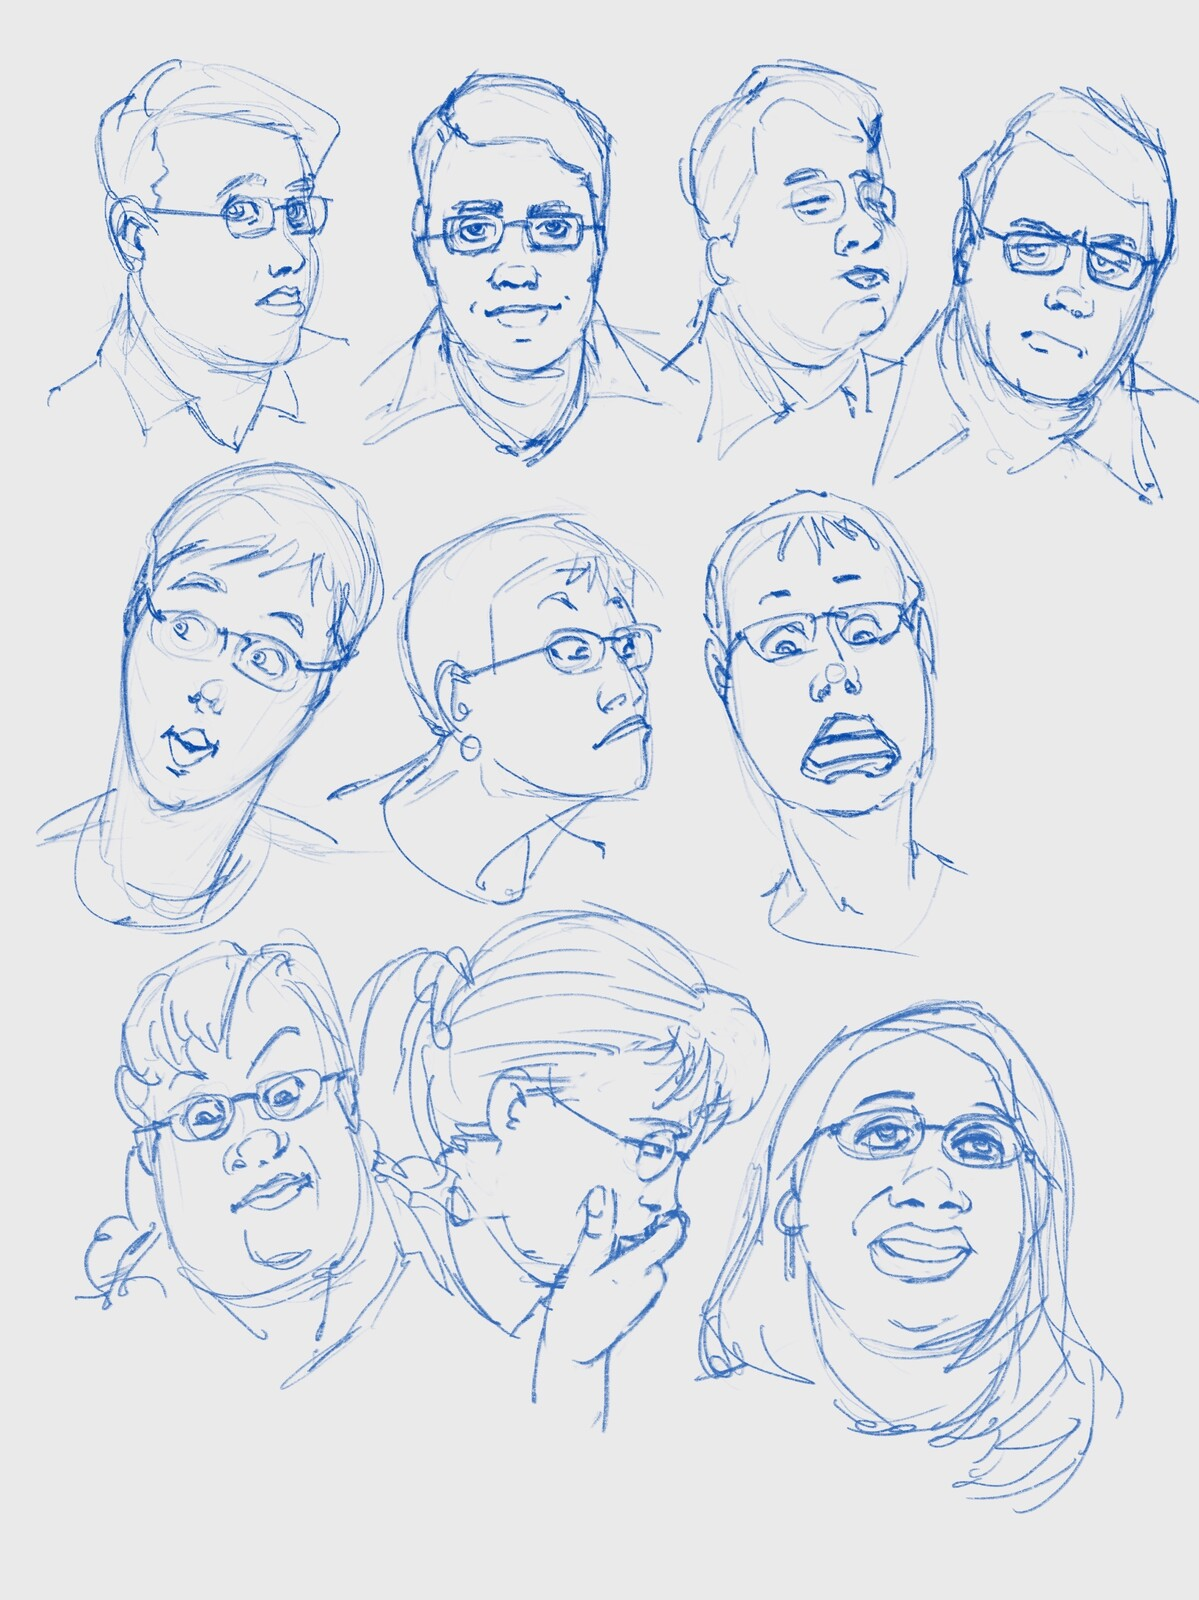 More expressions